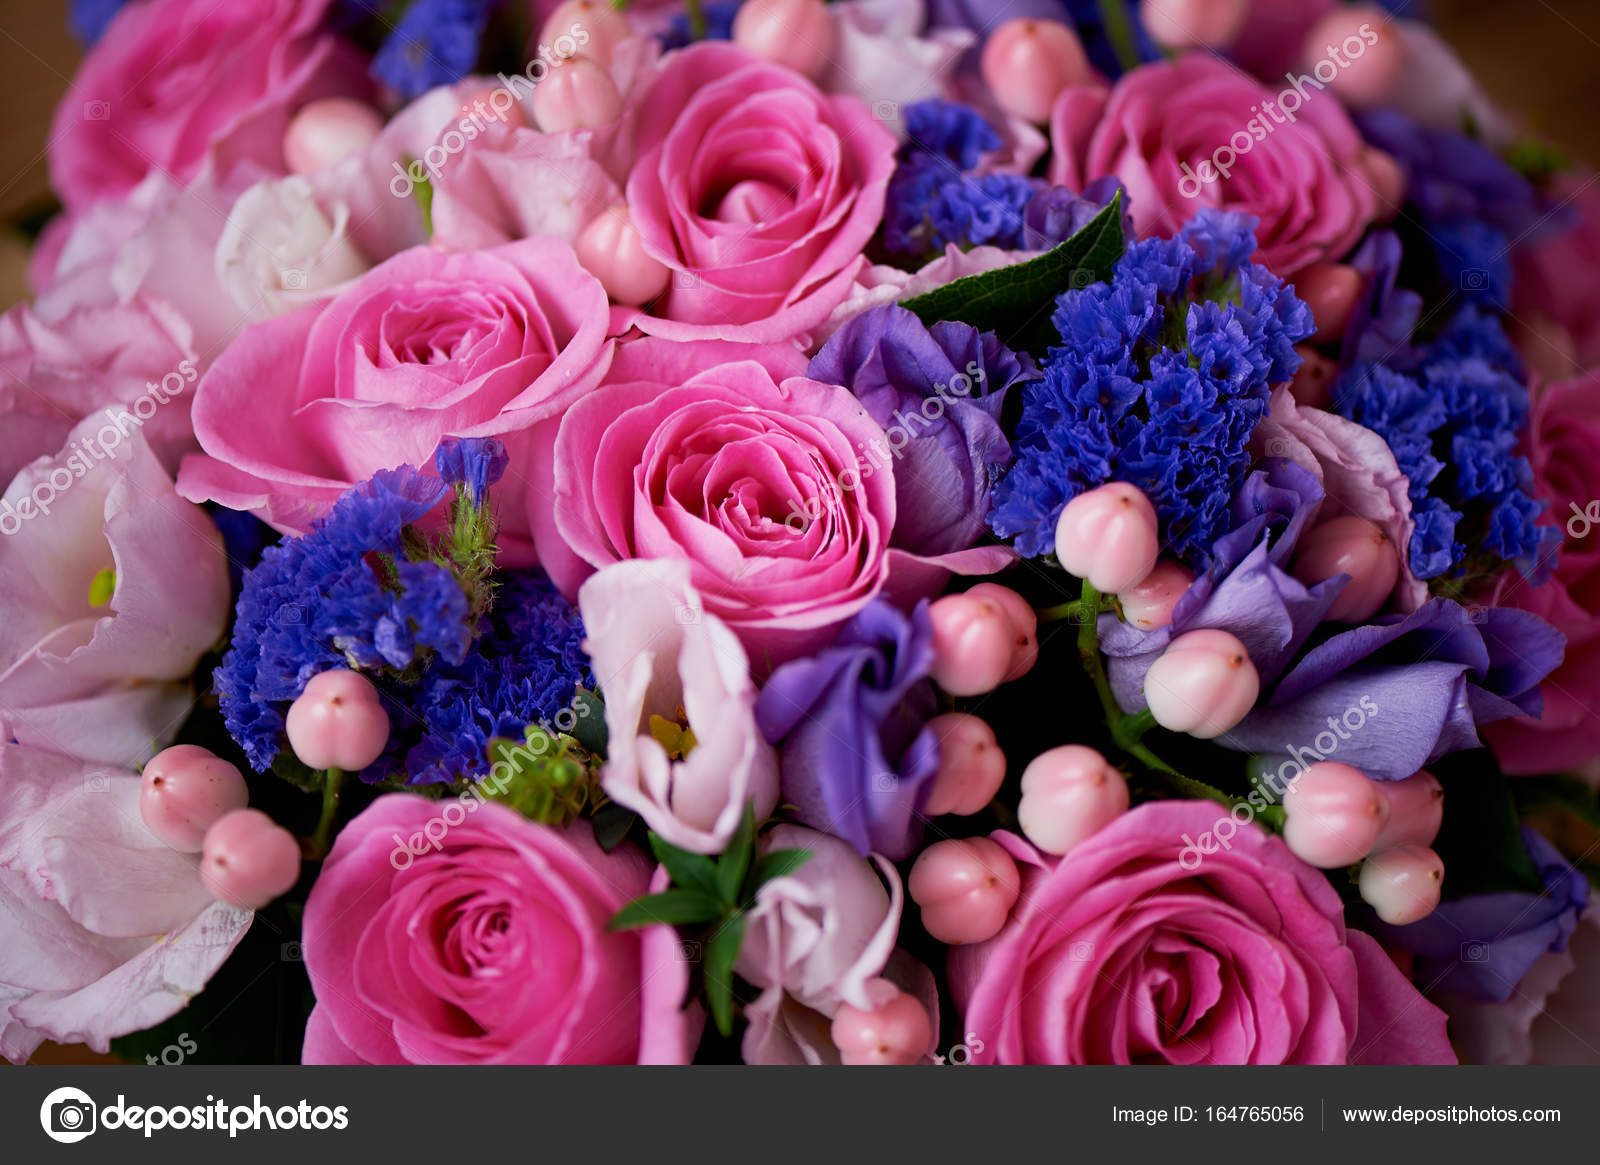 Wedding Bouquet In Pink And Purple Tones Beautiful And Delicate